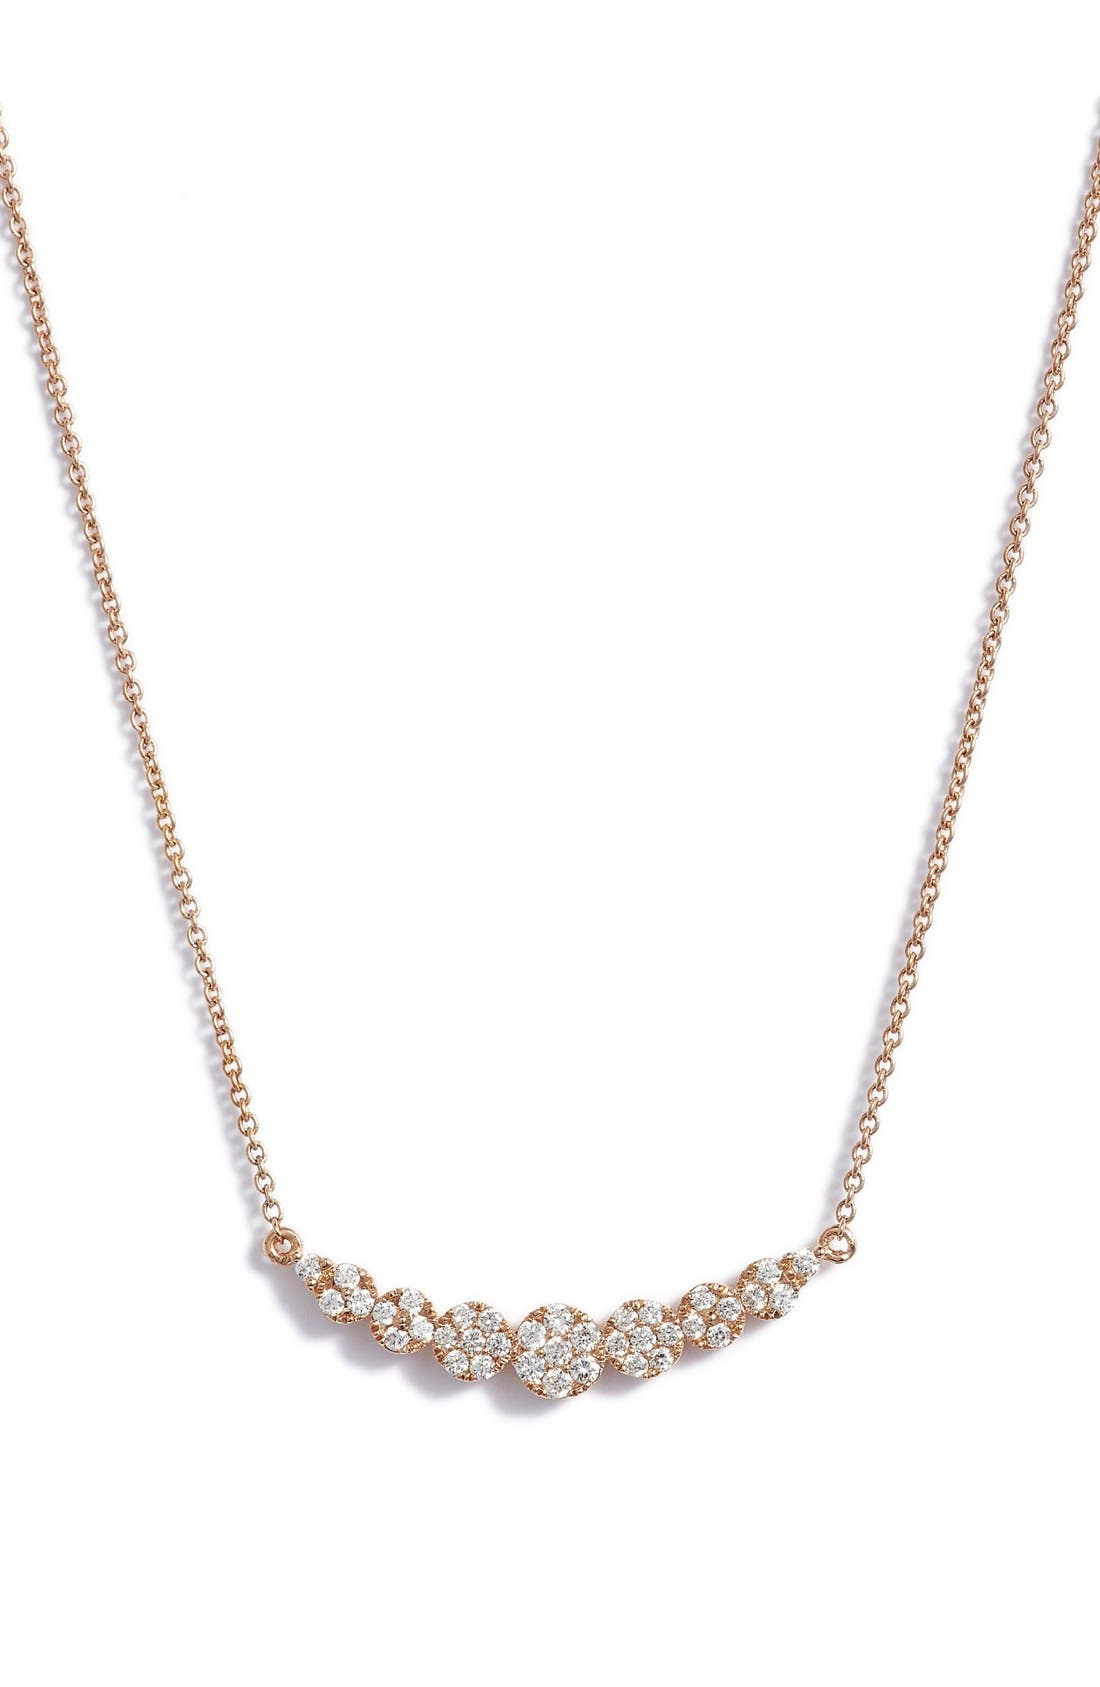 Main Image - Bony Levy 'Liora' Diamond Pendant Necklace (Nordstrom Exclusive)